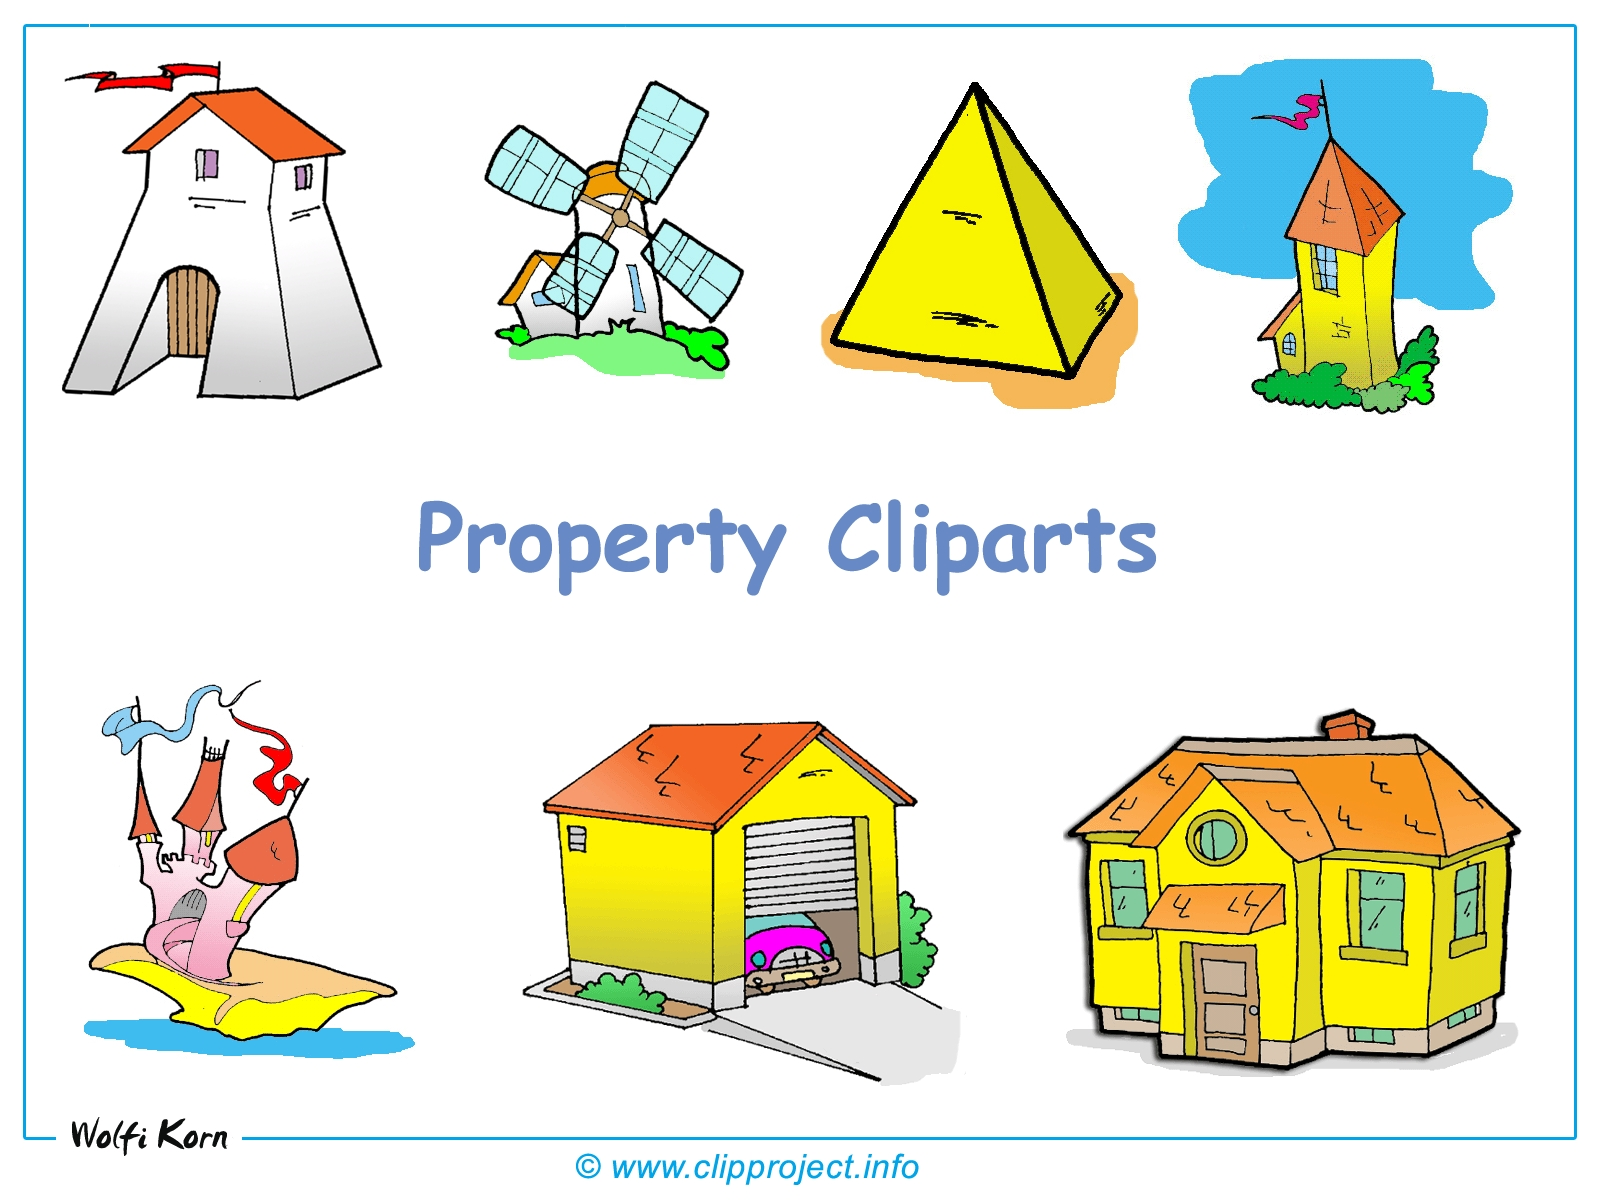 Free clipart downloads Best of Download cliparts Clipart Collection.